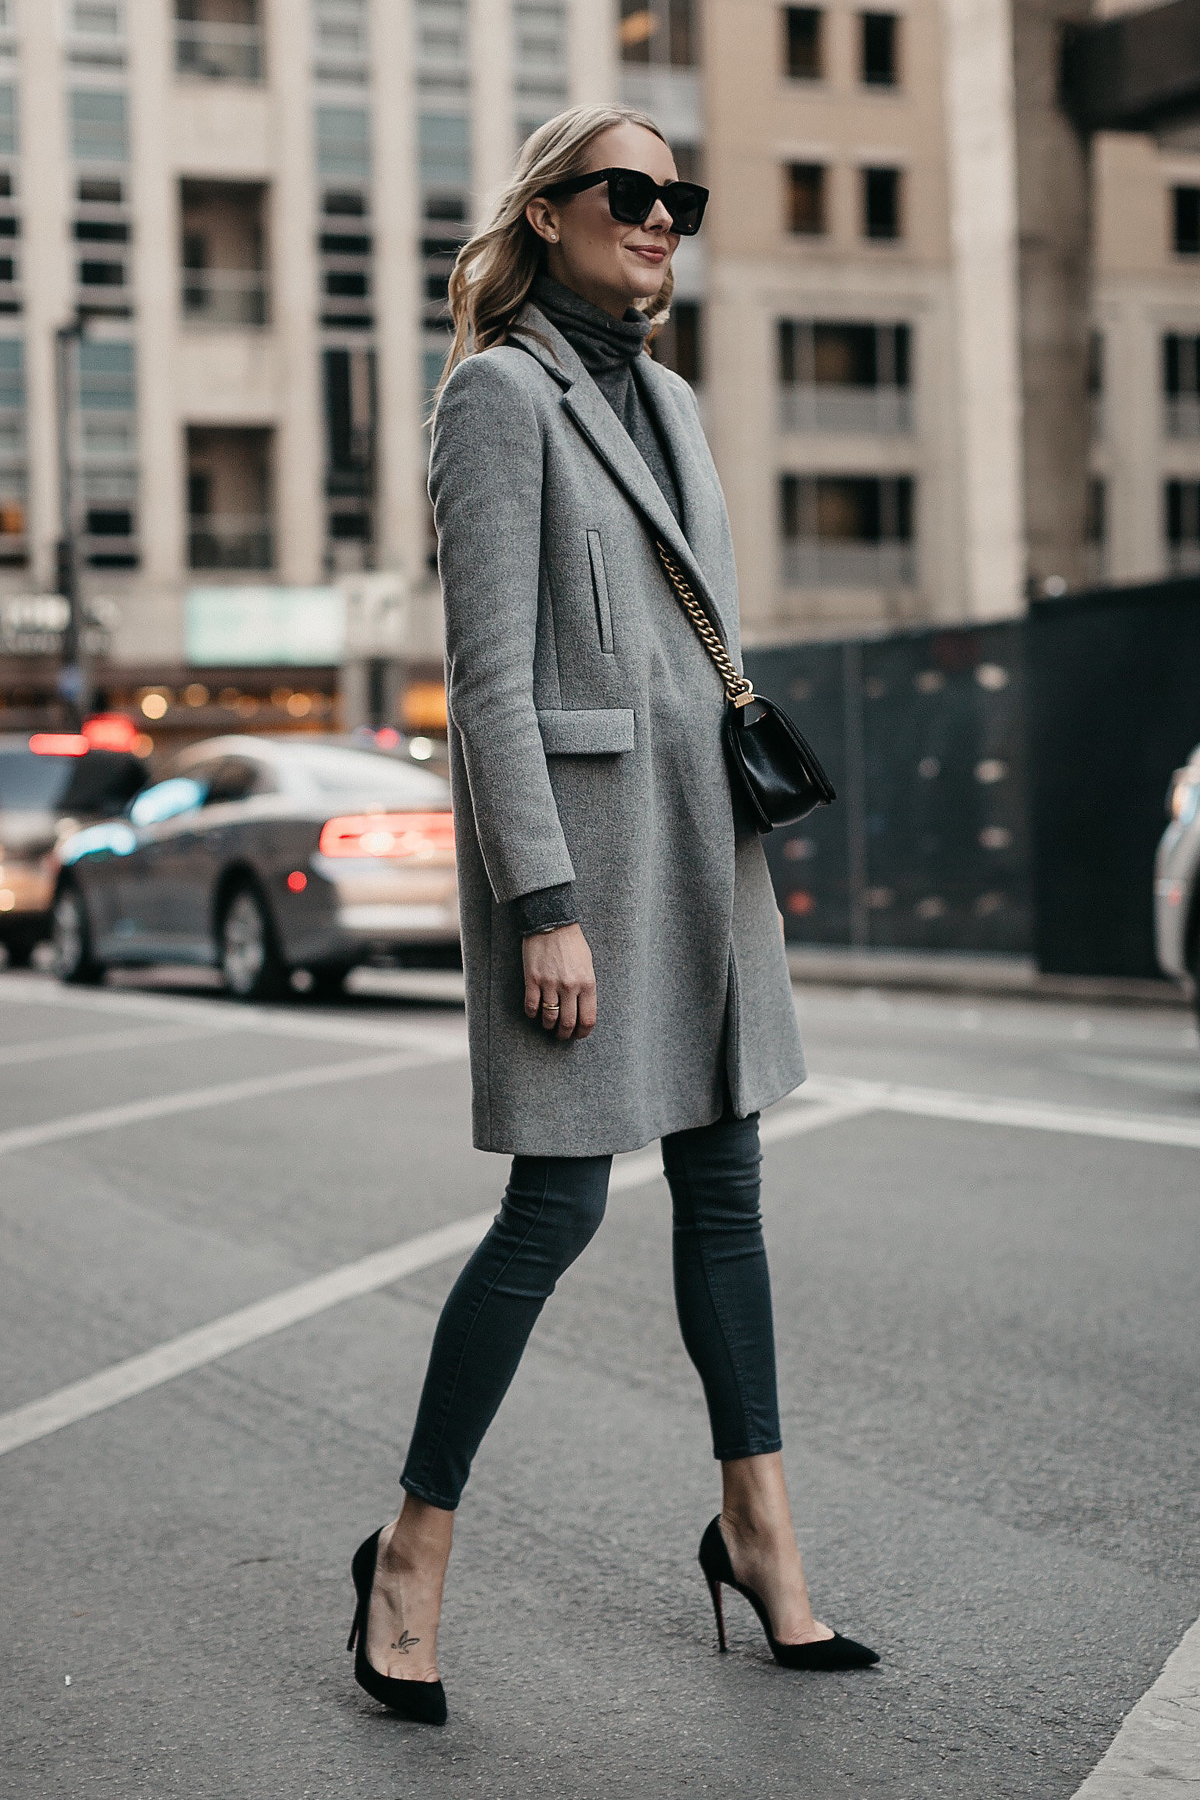 5c26b98862 Blonde Woman Wearing Grey Coat Grey Turtleneck Sweater Grey Skinny Jeans  Fashion Jackson Dallas Blogger Fashion